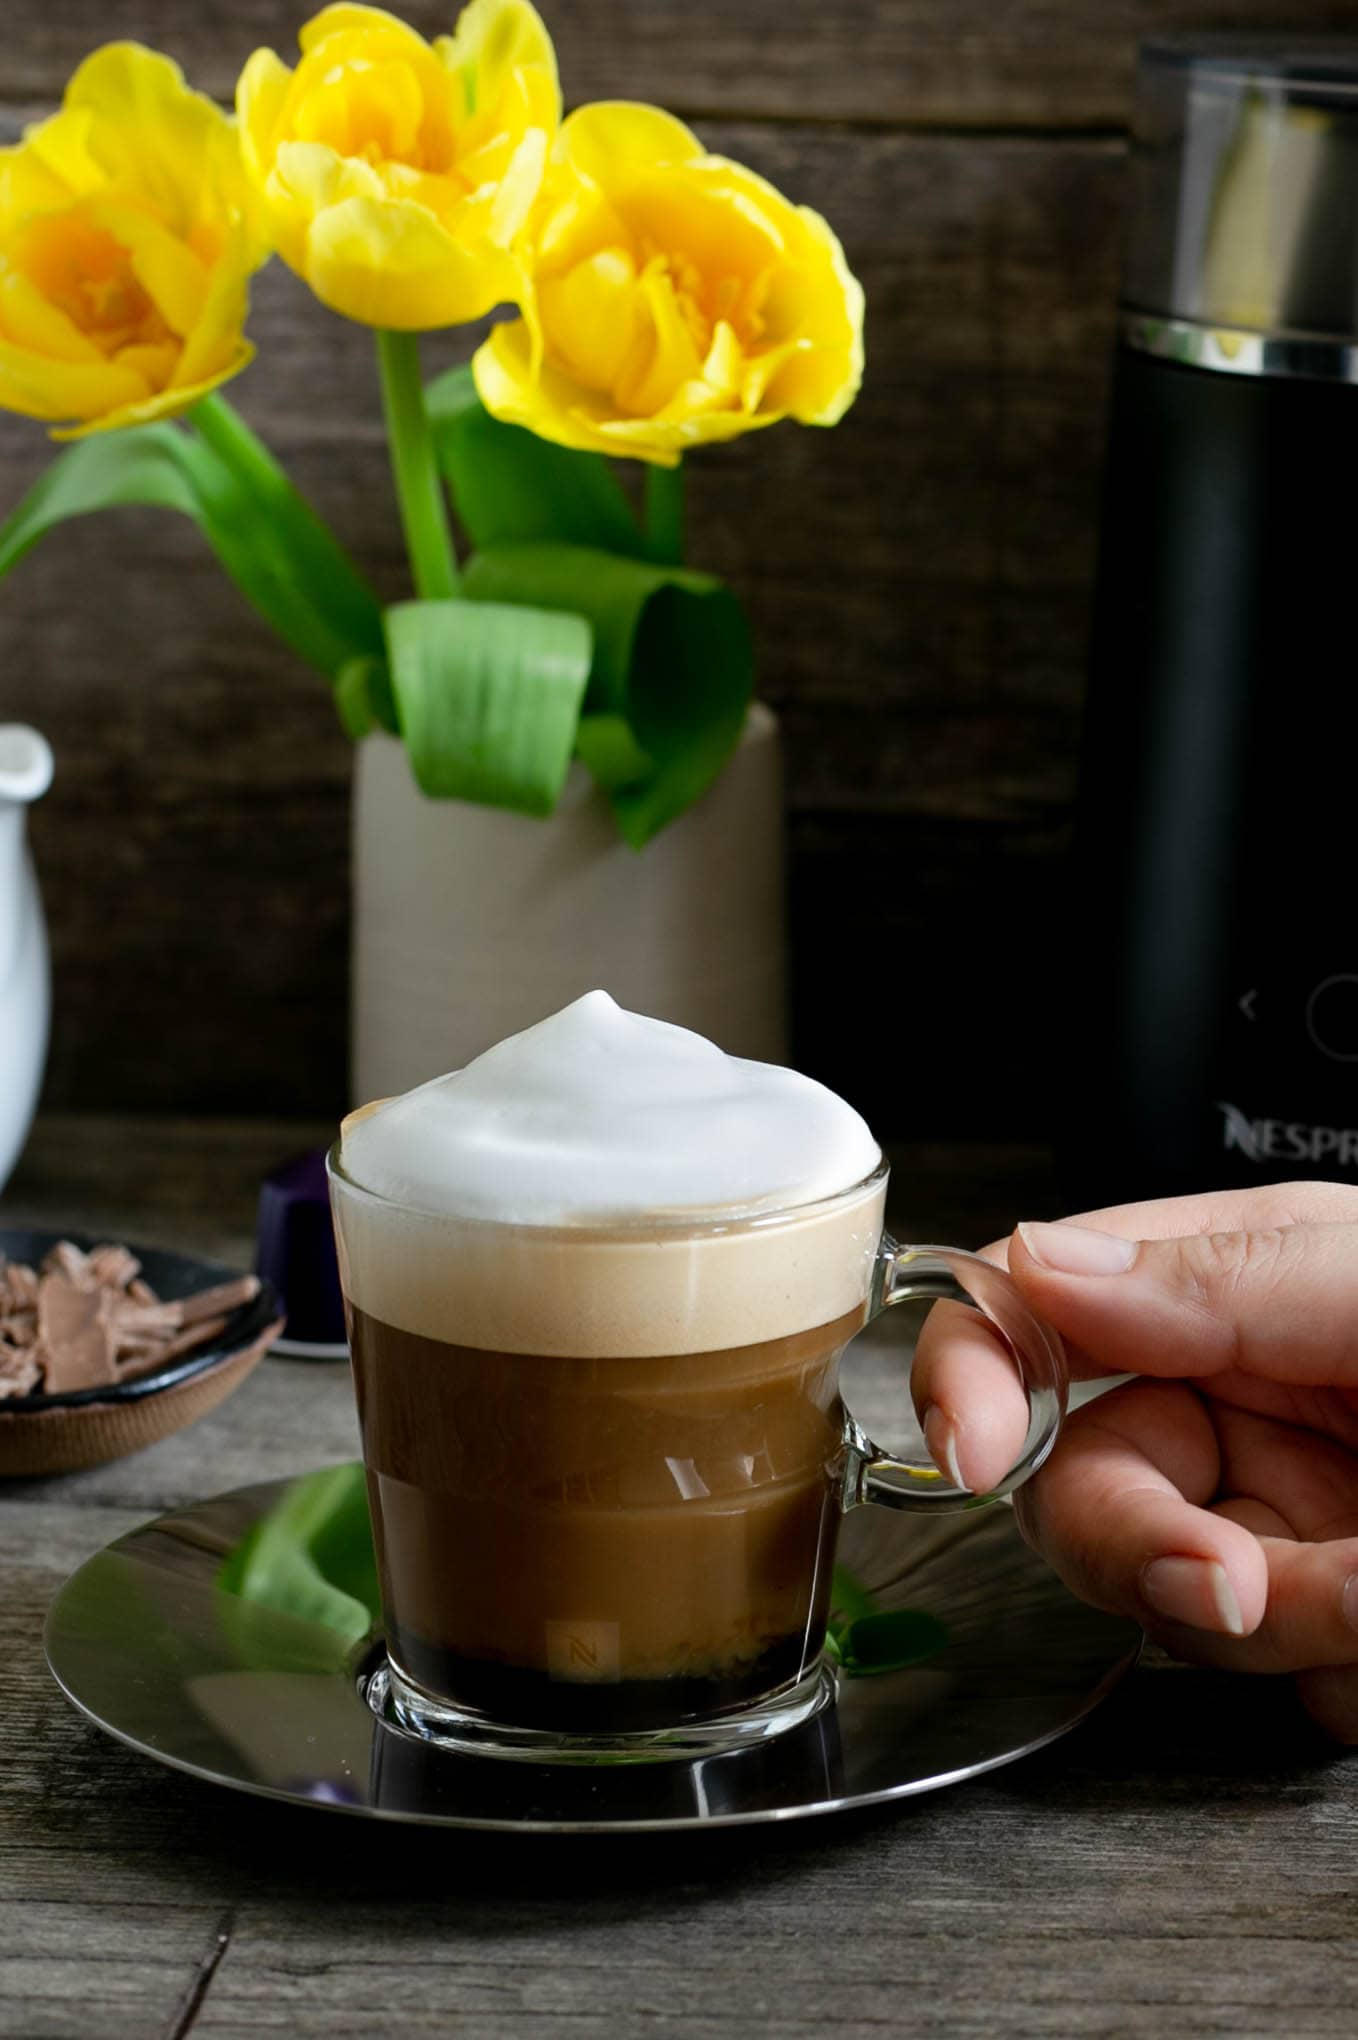 Cafe Viennois recipe using Nespresso Barista drink maker #coffee | via @annabanana.co